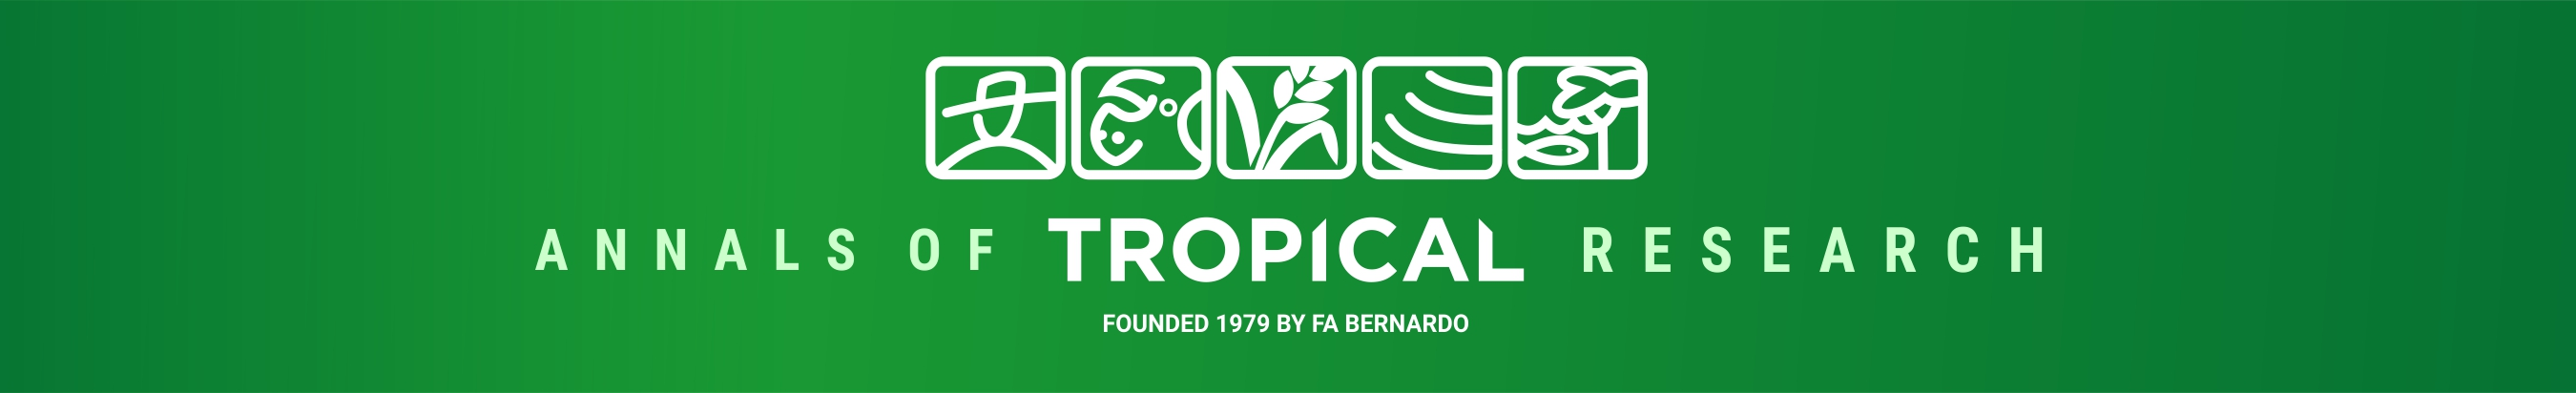 Annals of Tropical Research